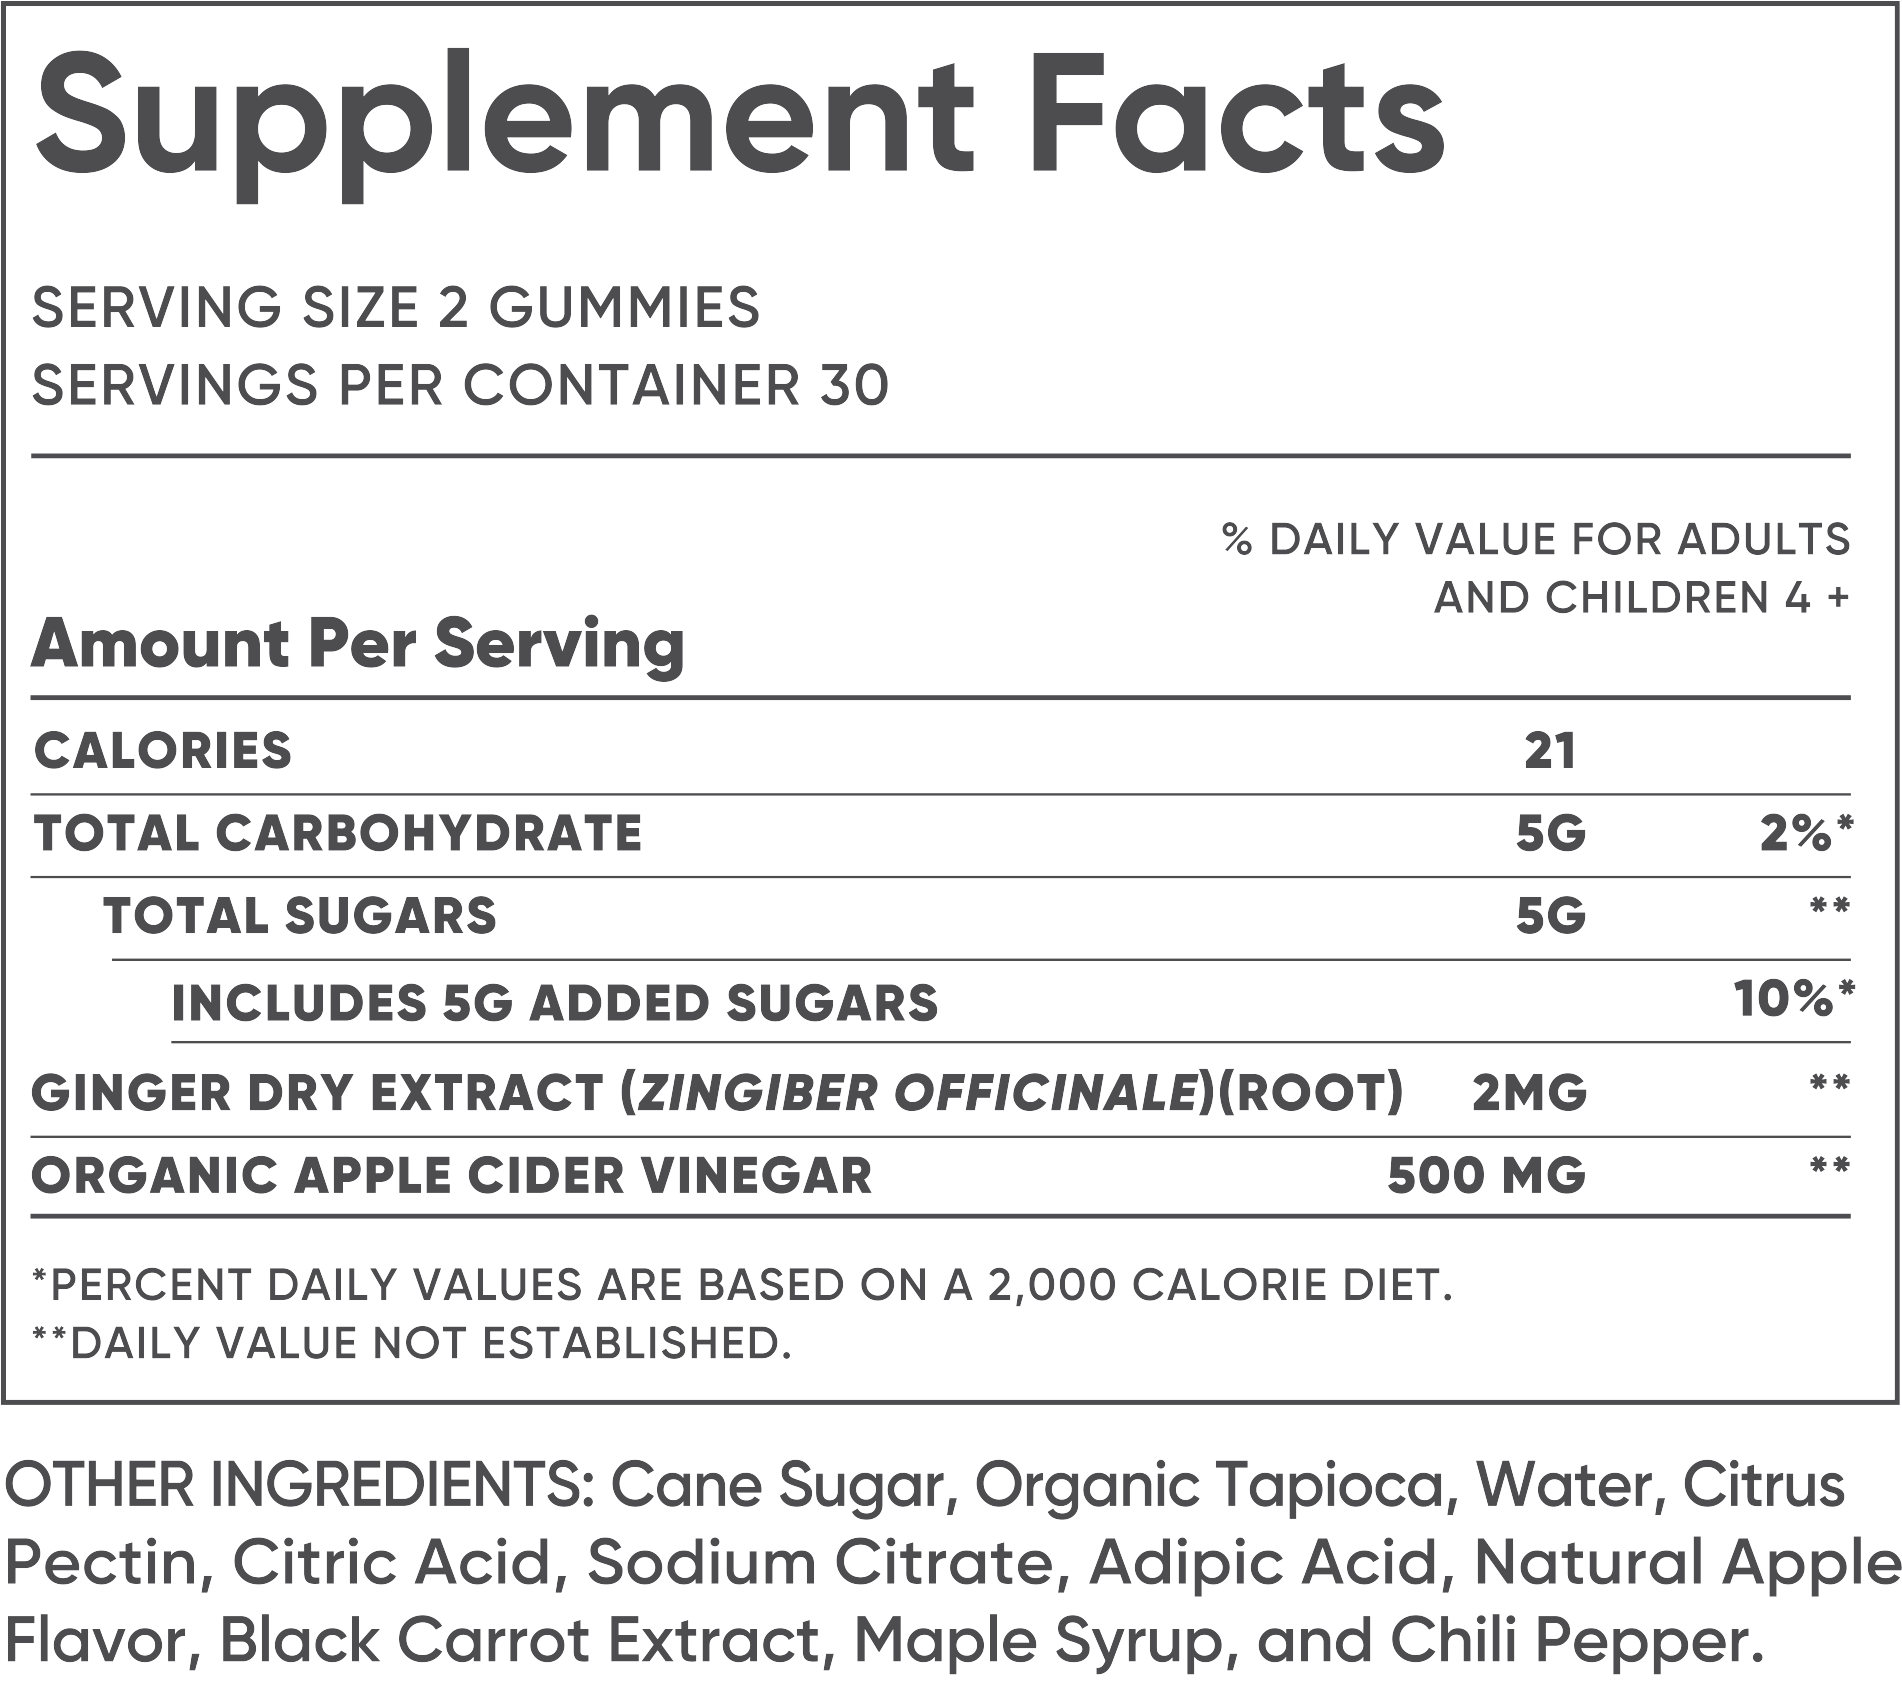 Glow Nutrition Supplement Facts